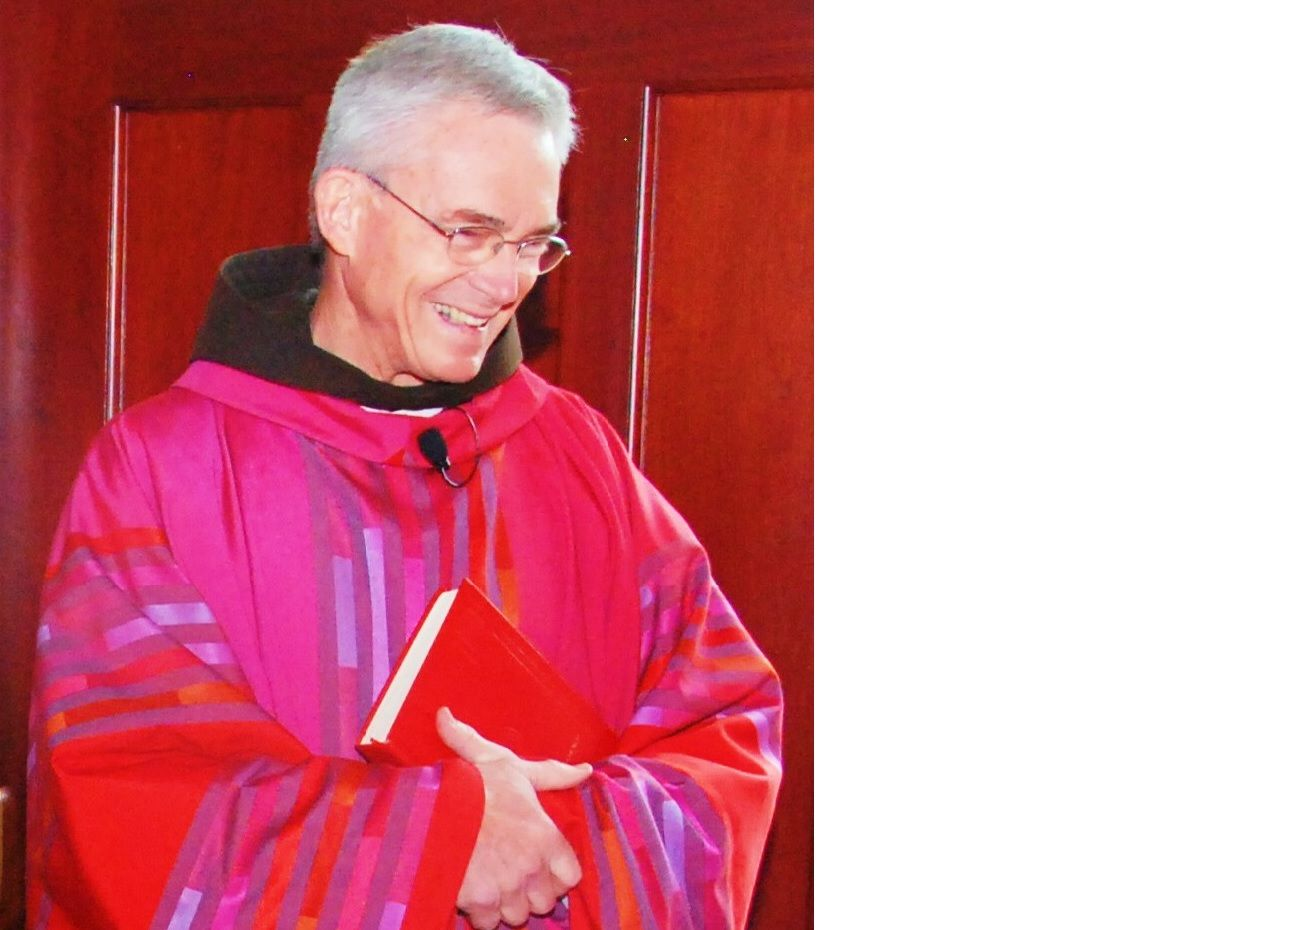 Fr. Jim Bok, OFM, is the pastor of Mary, Gate of Heaven Church in Negril, Westmoreland, Jamaica. A Franciscan priest he has devoted the last 6 1/2 years to serving the people of this poor Jamaican parish.  3-2015